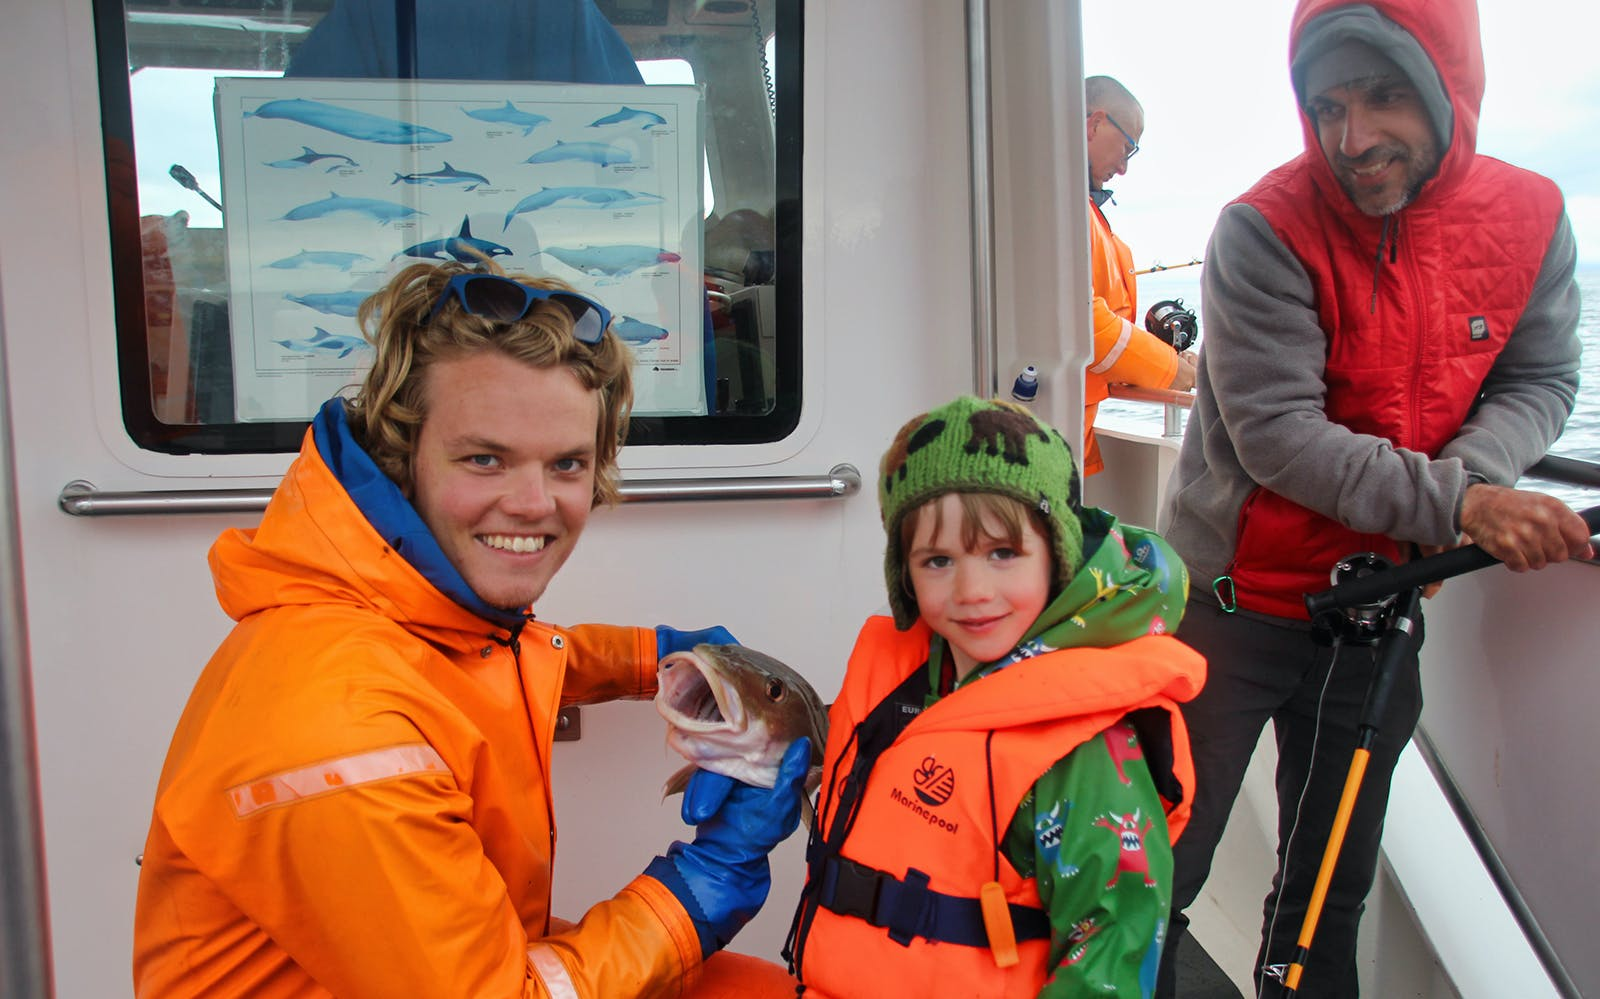 sea angling experience off the reykjavik coast-3